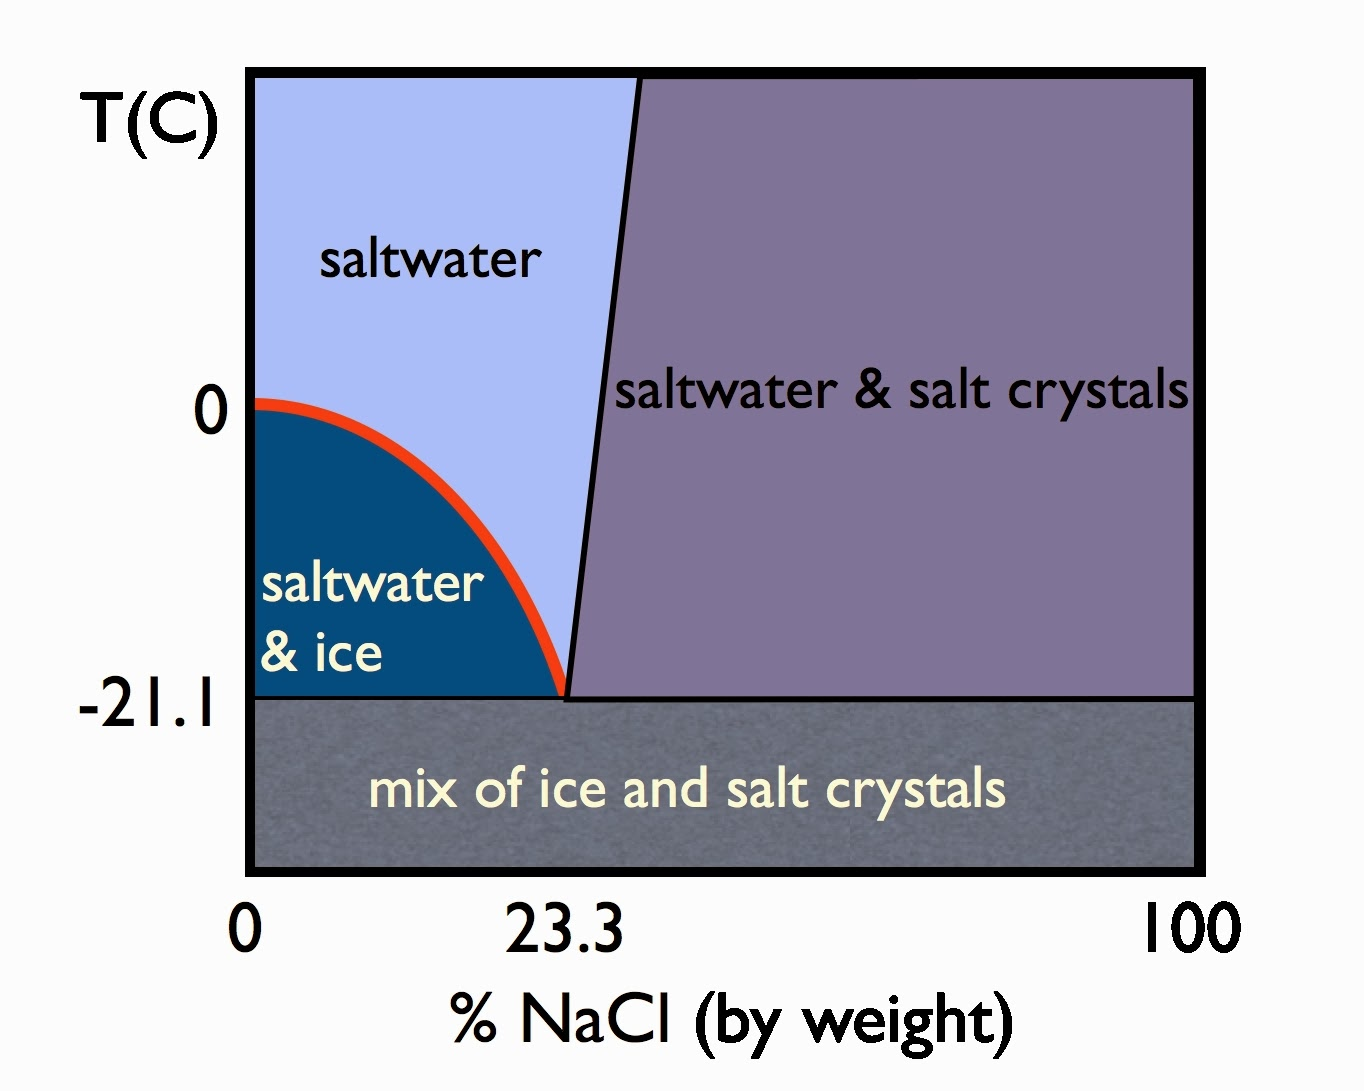 Cellomom on cars the nitty gritty on road salt this phase diagrams tells you a few things first of all it takes quite a bit of salt to depress the freezing point 10 salt will only win you a few pooptronica